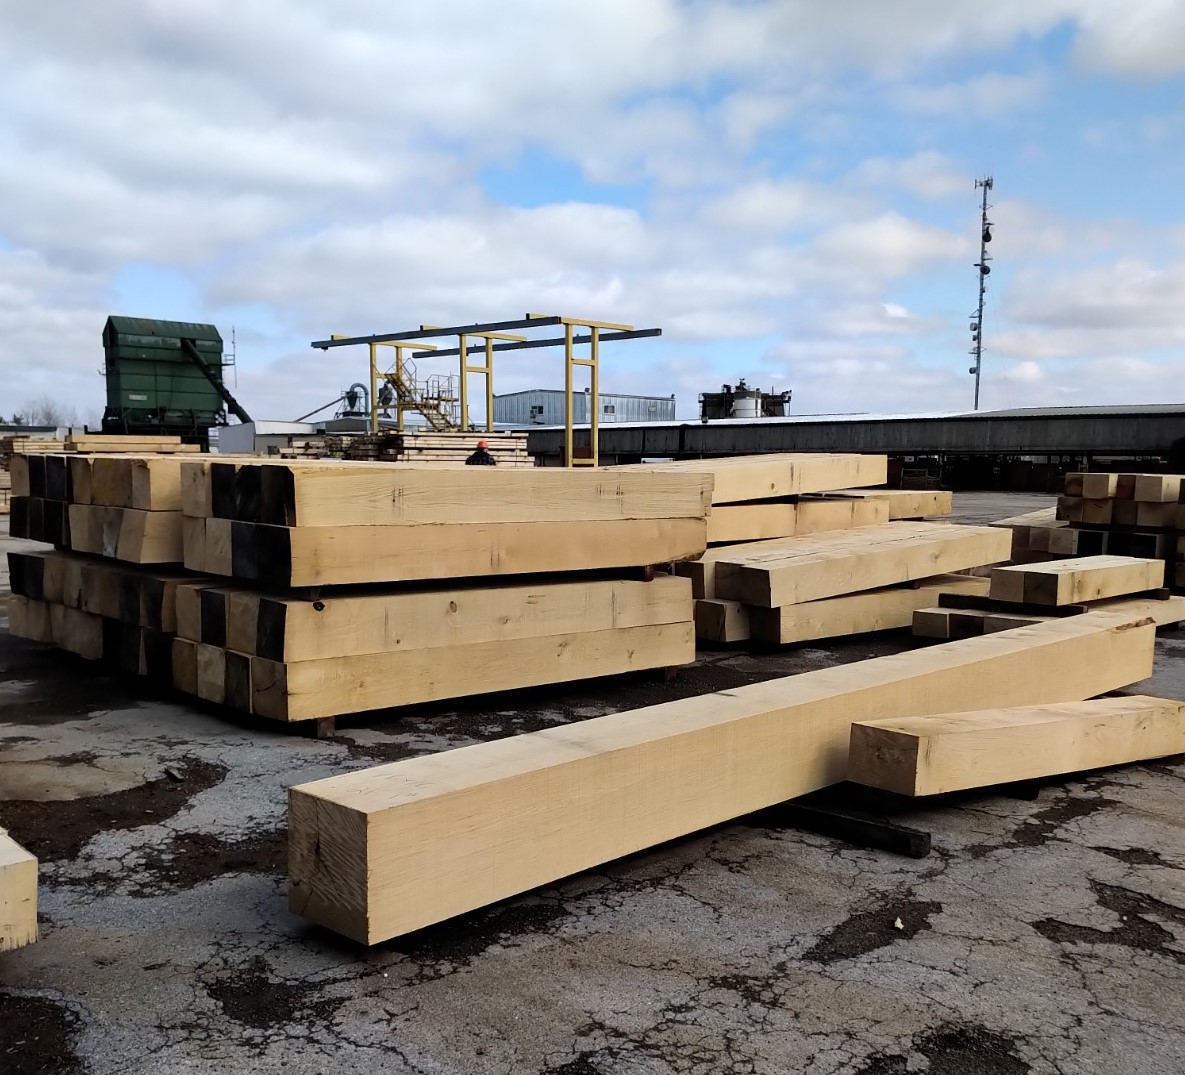 Large blocks of wood sitting in a concerte lot with machines in background.